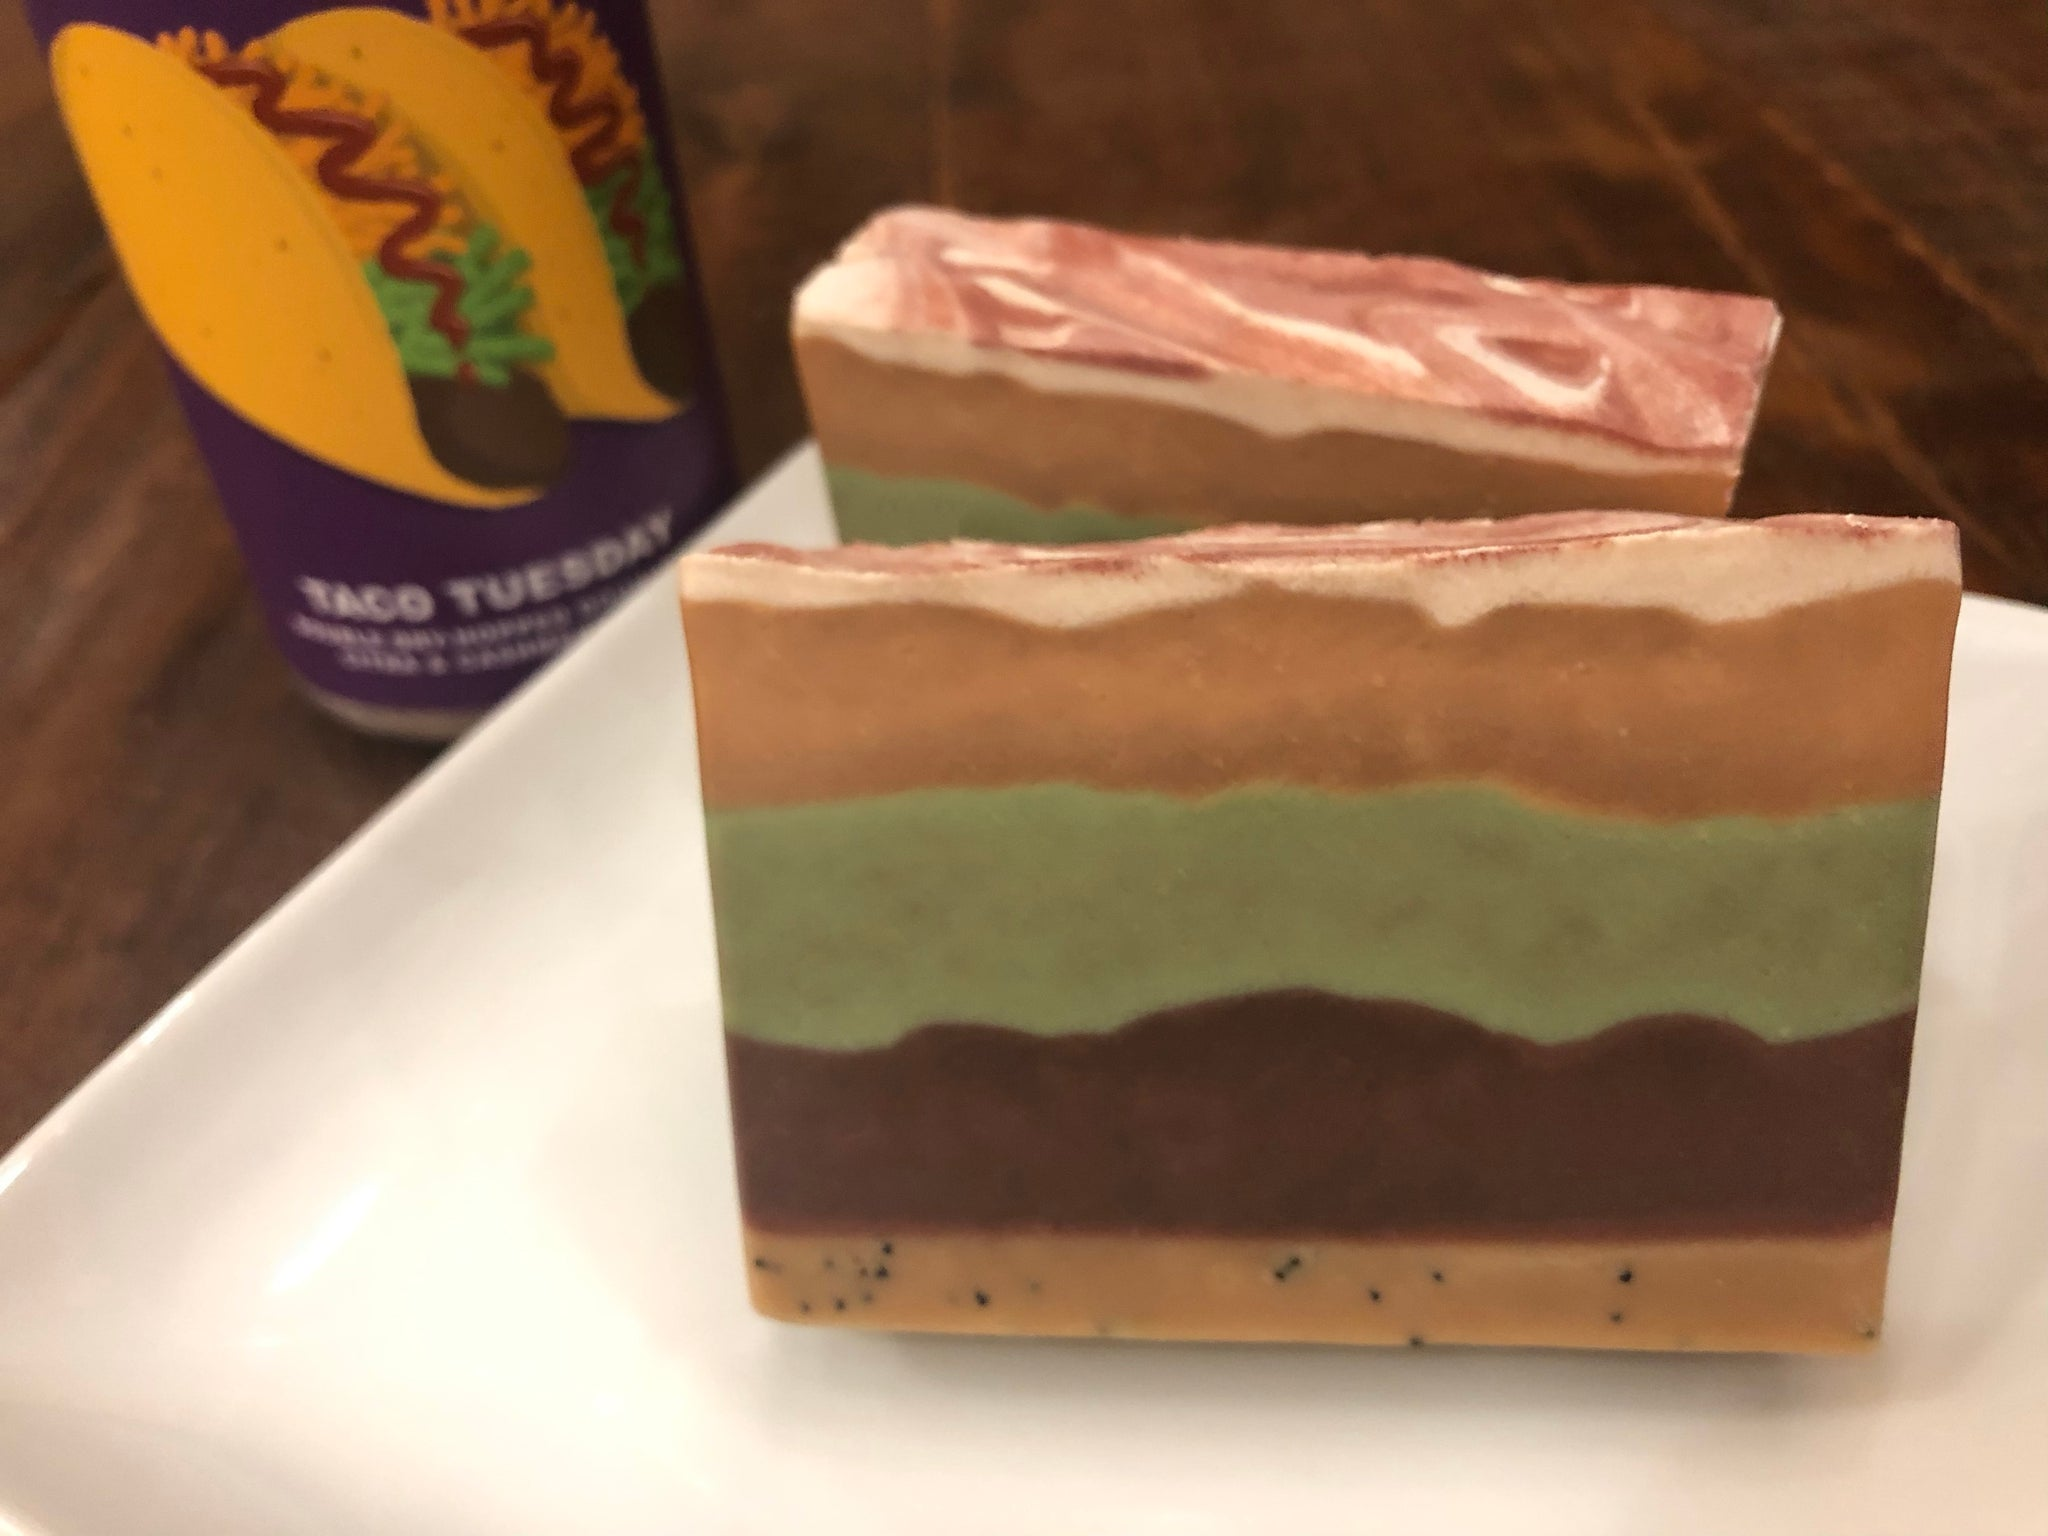 Taco Tuesday Beer Soap - Spunk N Disorderly Soaps